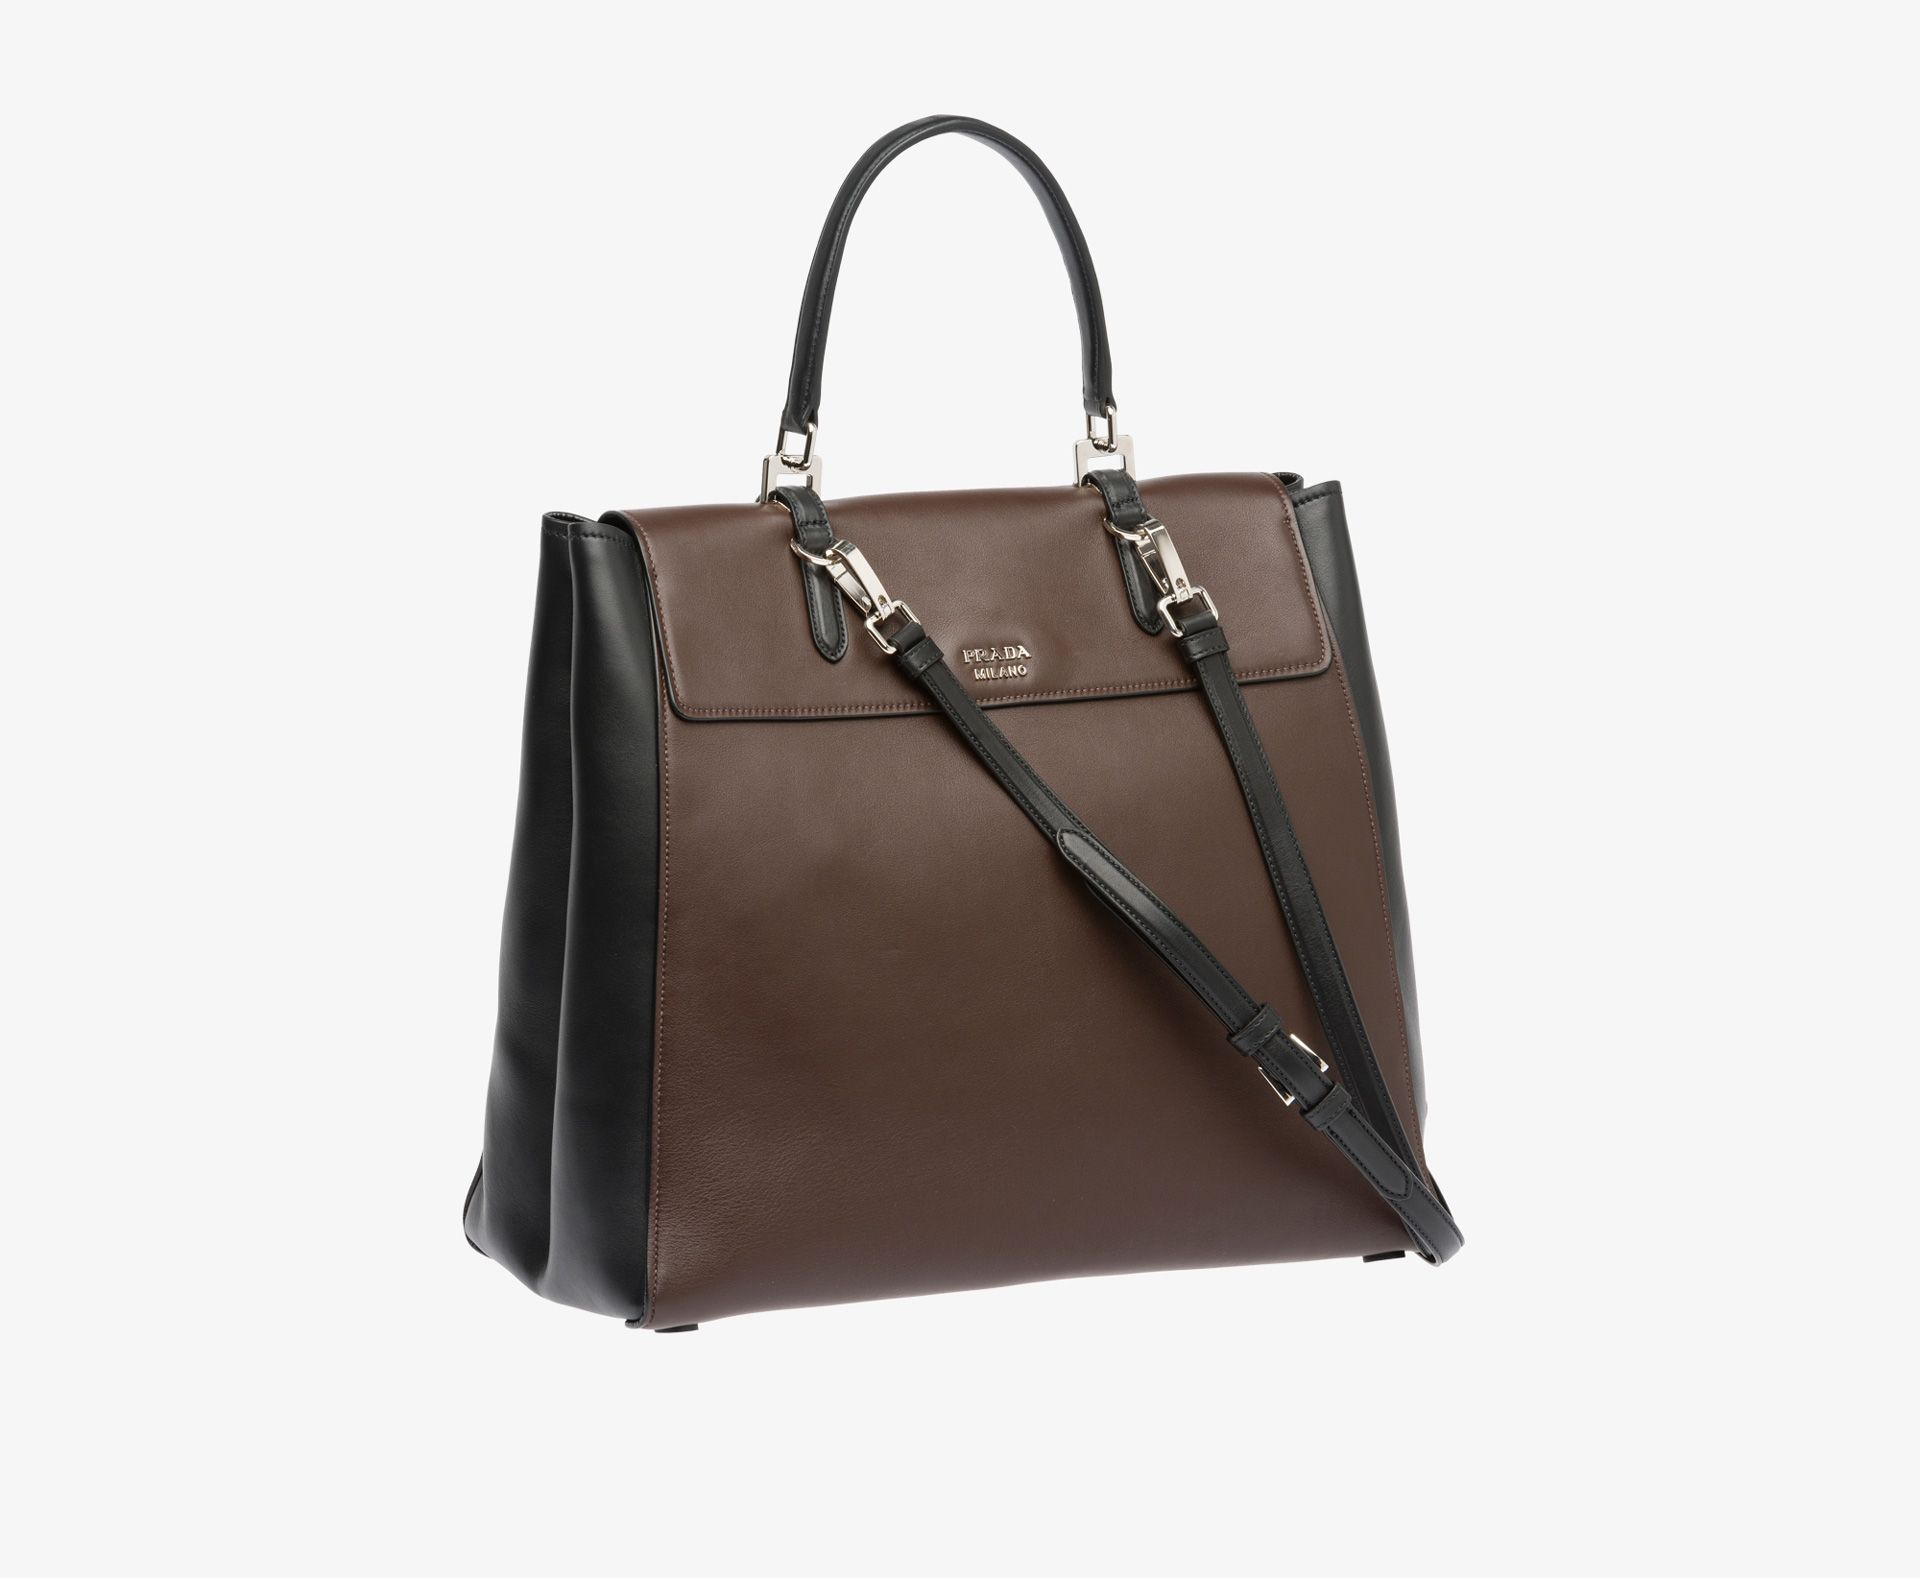 Bn2826 2aix F0a0l Flap Bag Handbags Woman E Prada Reported On